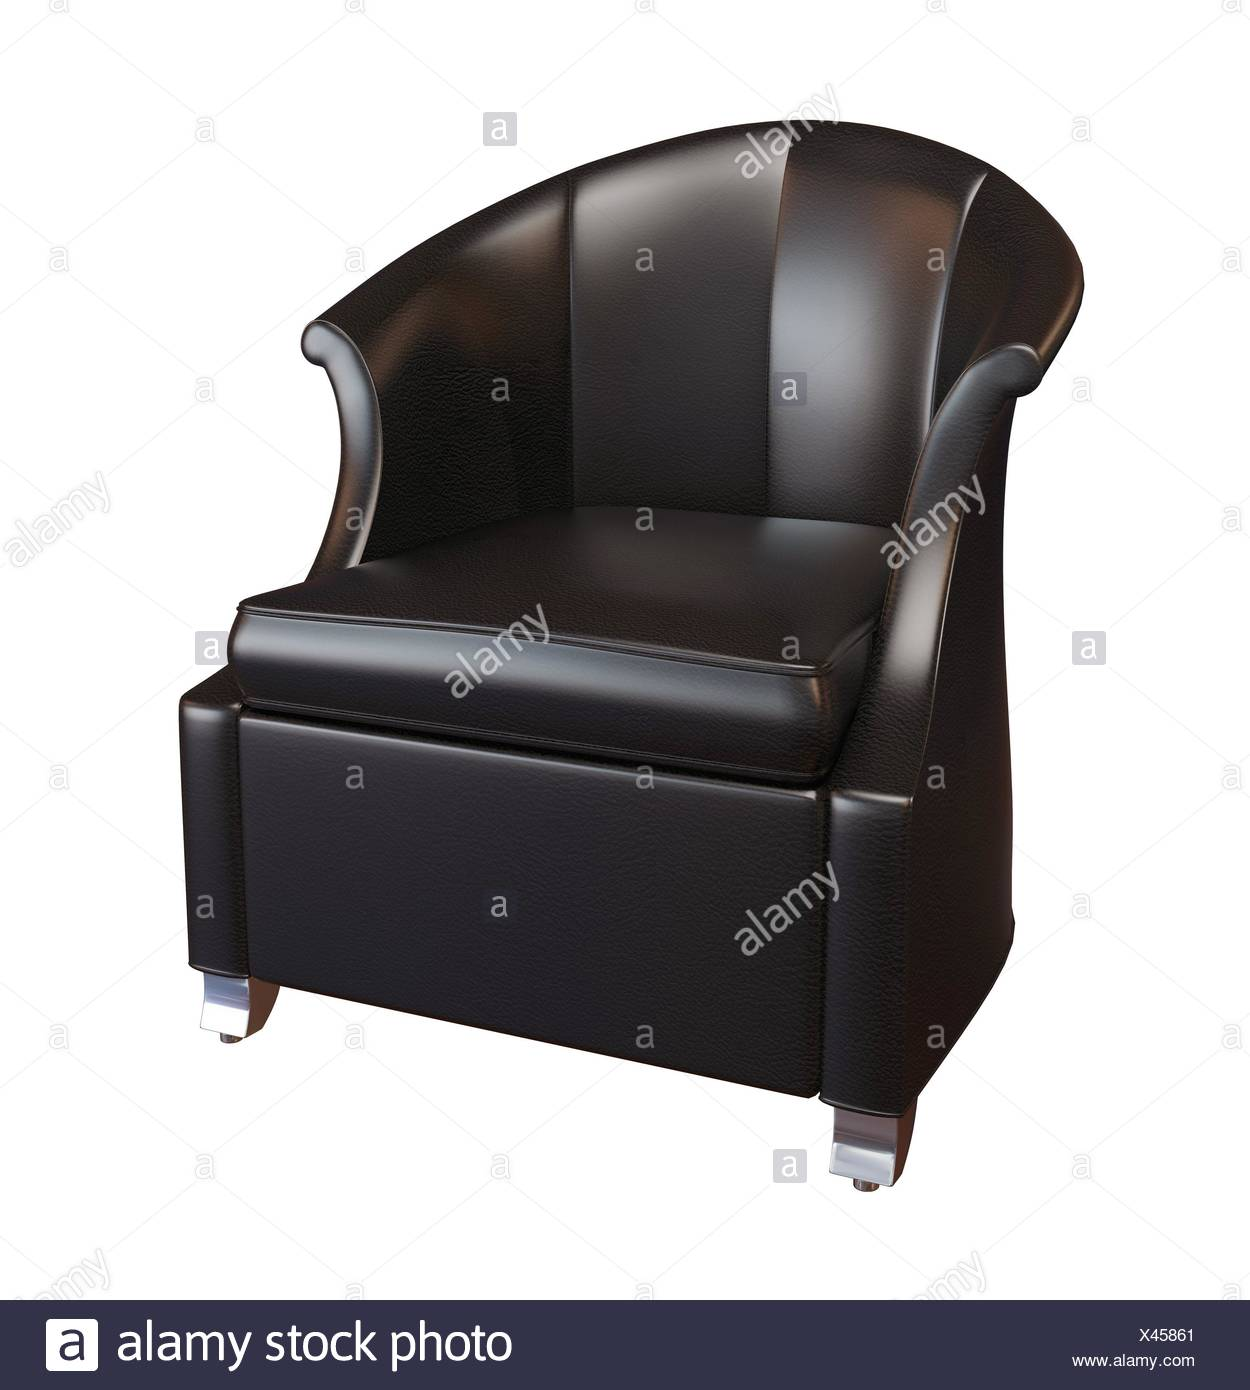 3D photorealistic image of a black leather comfy armchair, isolated against a white background - Stock Image